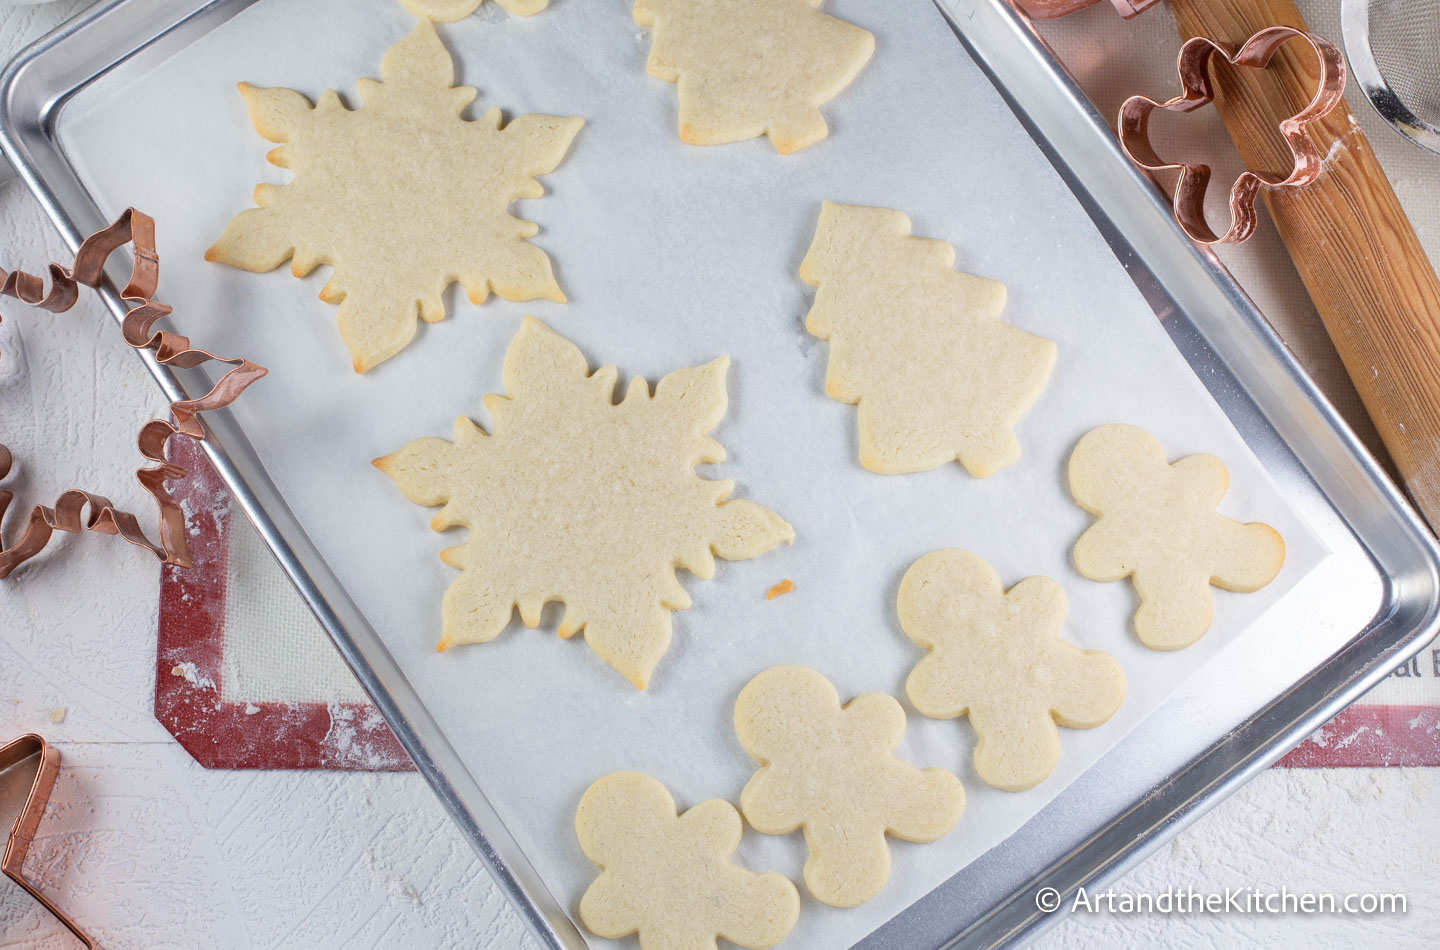 White parchment line baking pan filled with holiday shaped baked cookies.